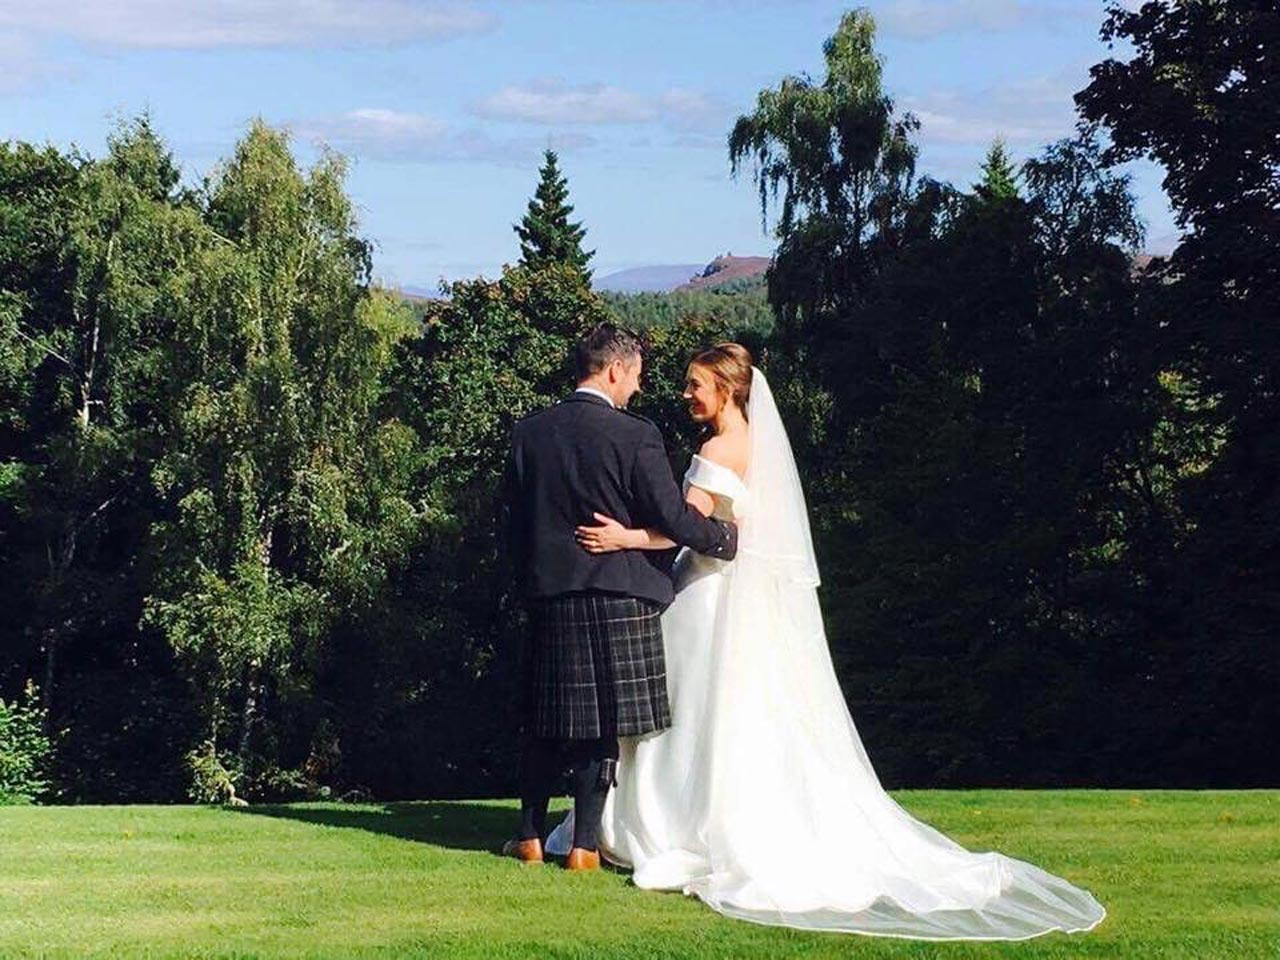 Glentrium-Estate-Wedding-Venue-Scotland-hannah-and-ross-on-lawn.jpg